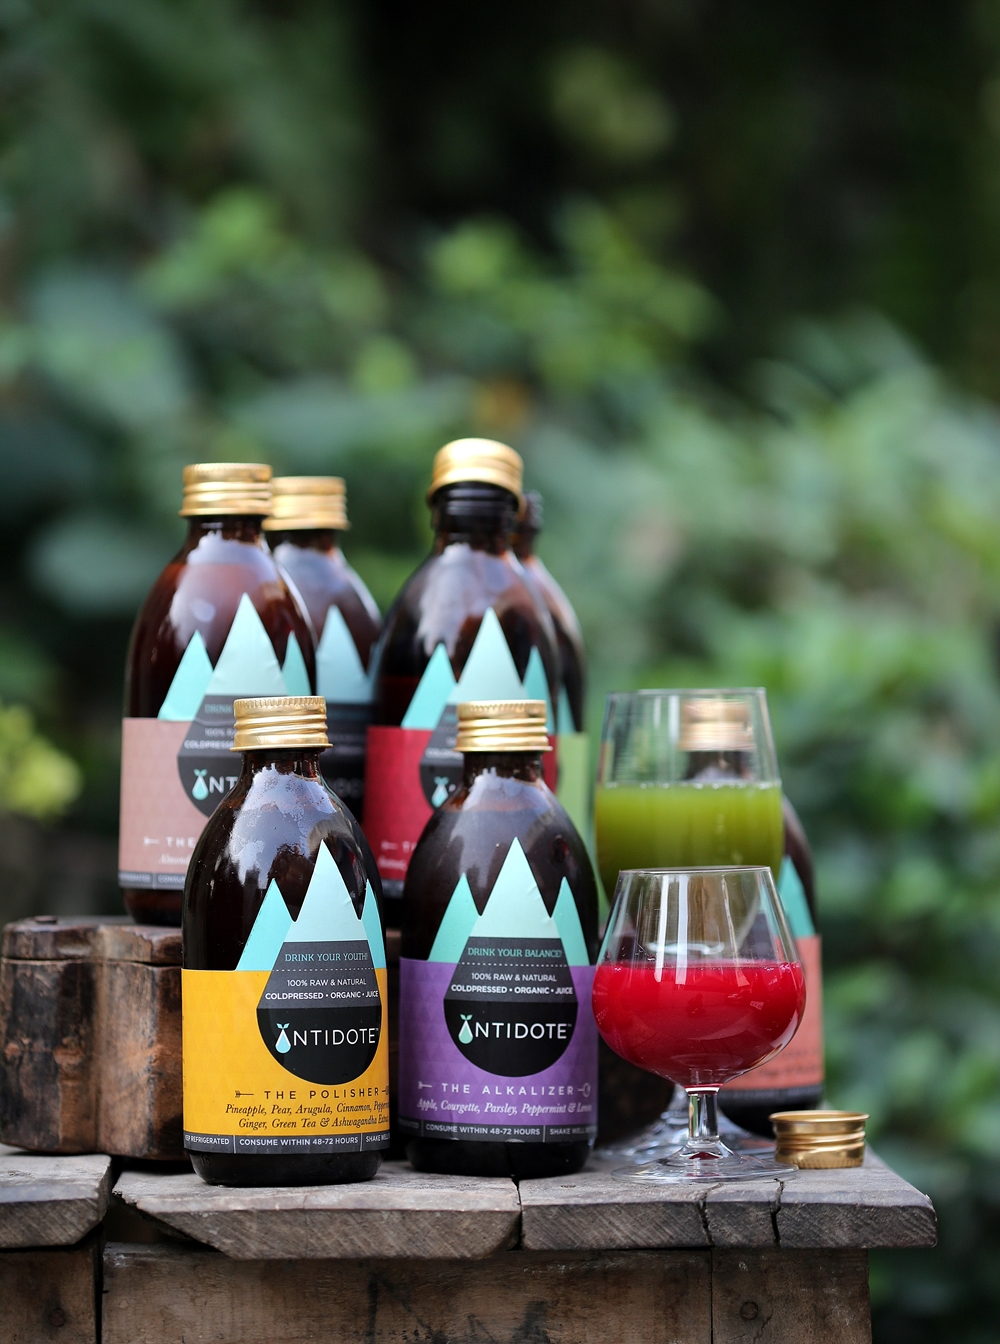 Antidote, coldpressed organic juice